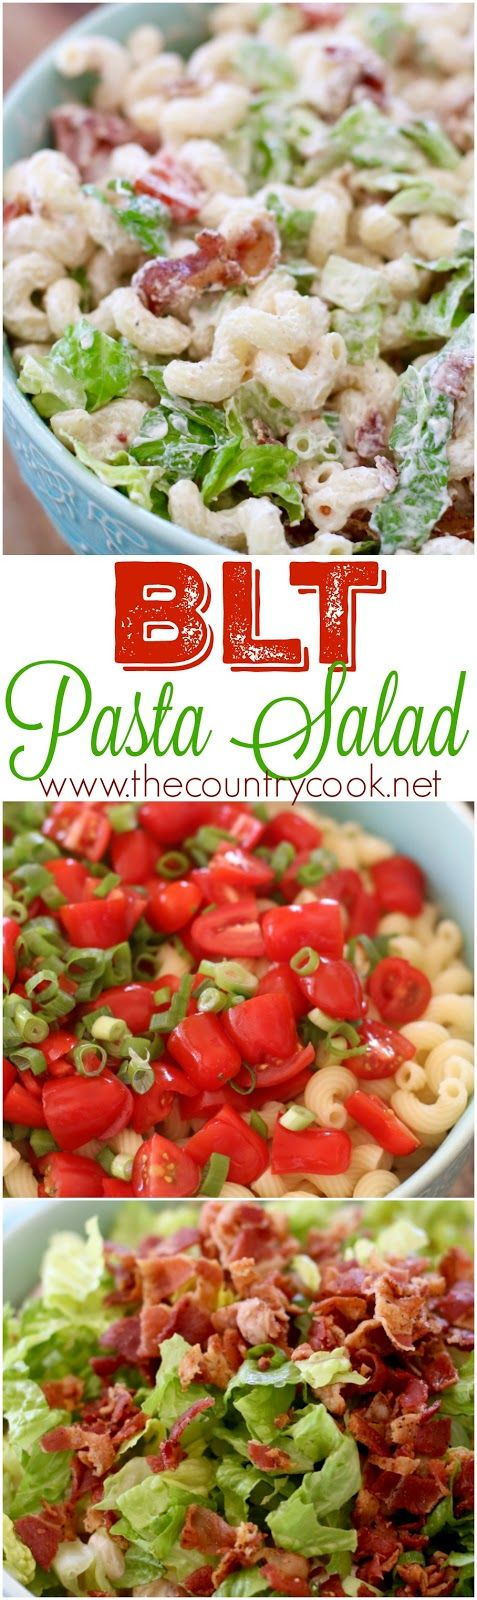 BLT Pasta Salad Recipe via The Country Cook. - Corkscrew pasta with lots of bacon and tomatoes and a yummy, creamy dressing. Perfect for all those Memorial Day and Fourth of July barbecues and potlucks! Easy Pasta Salad Recipes - The BEST Yummy Barbecue Side Dishes, Potluck Favorites and Summer Dinner Party Crowd Pleasers